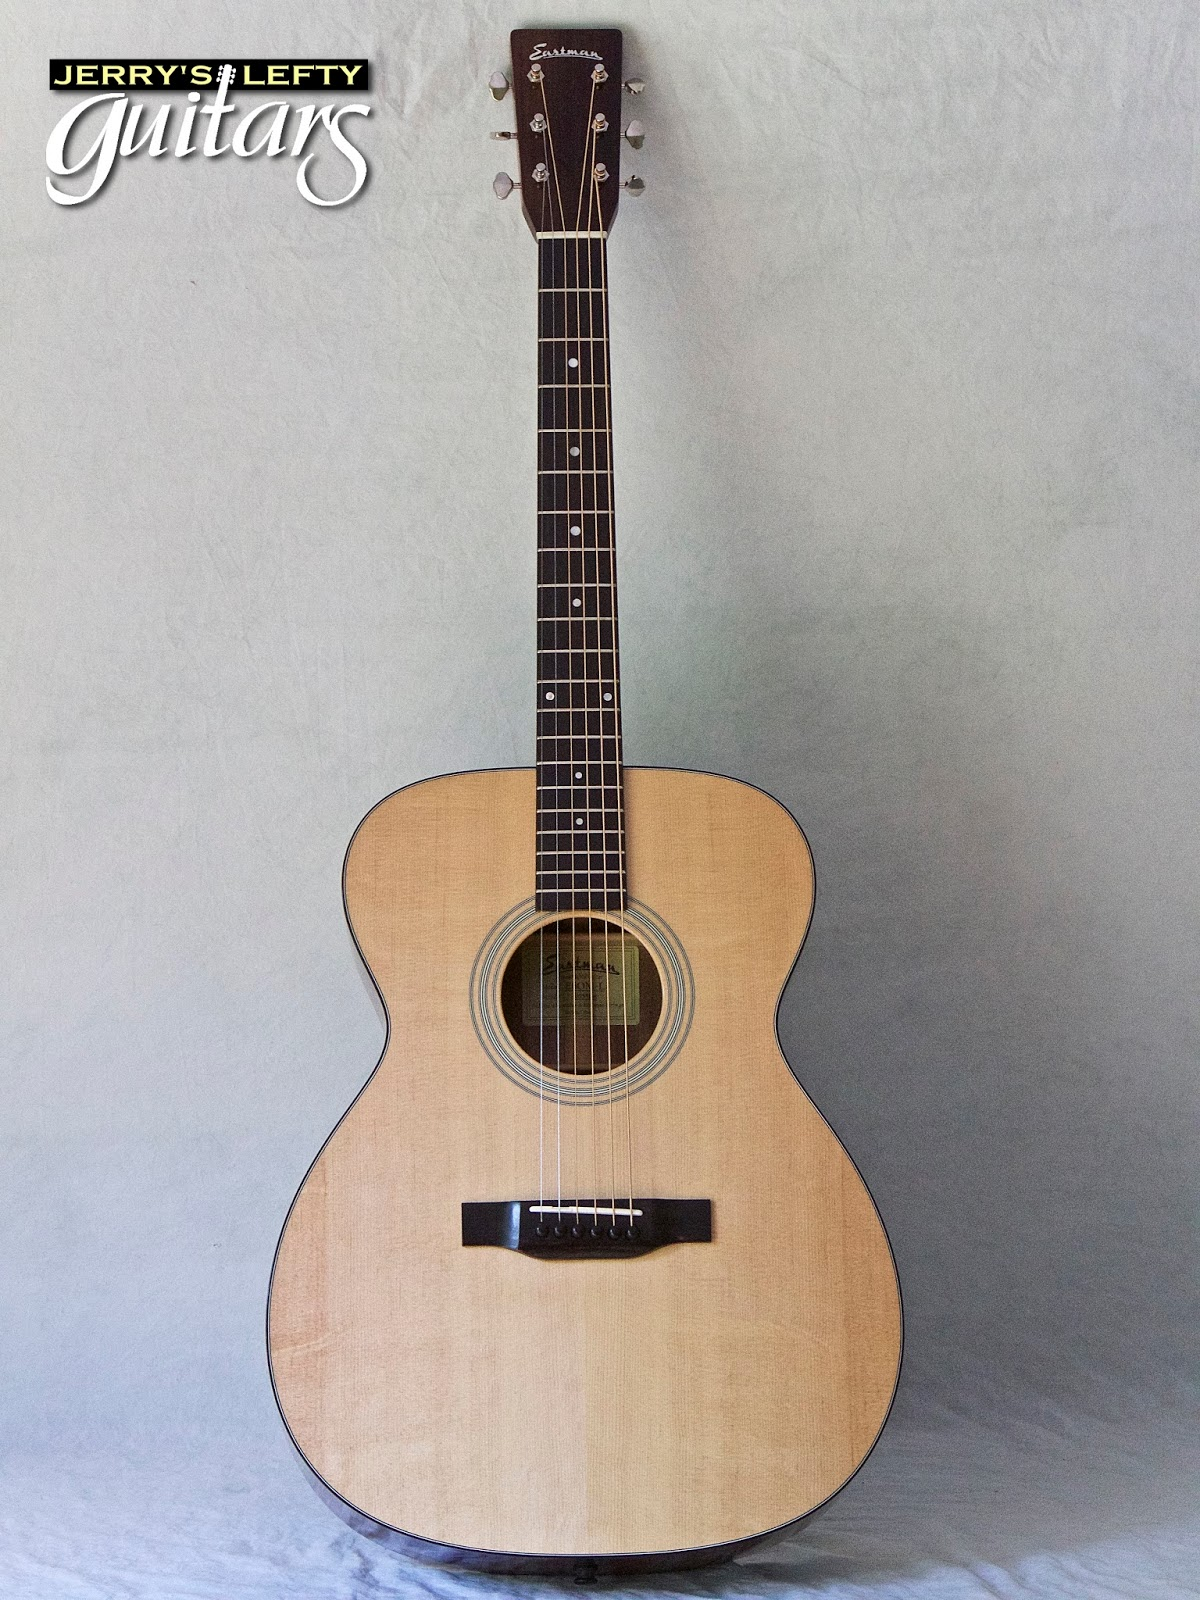 Jerry S Lefty Guitars Newest Guitar Arrivals Updated